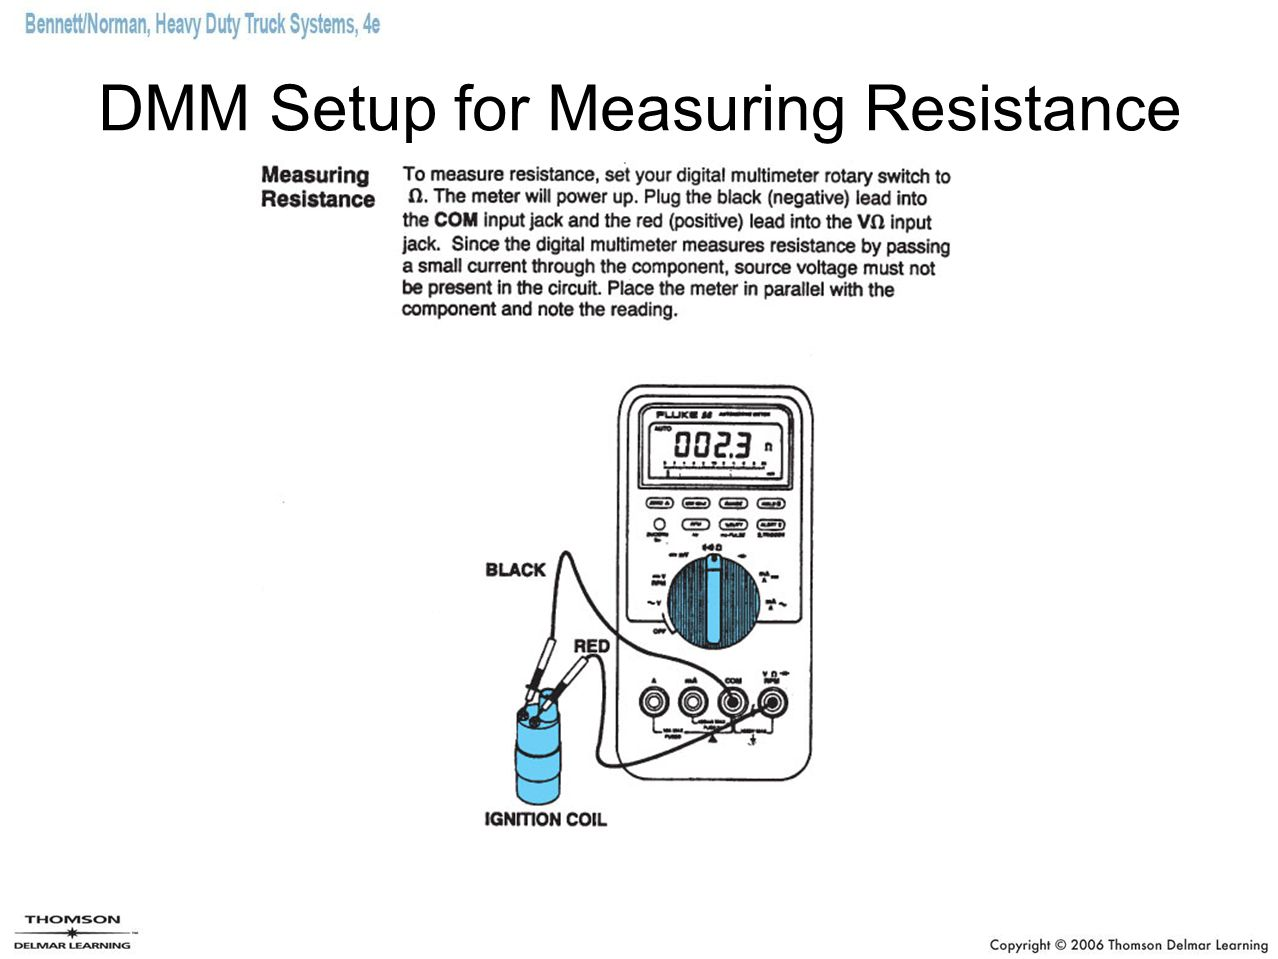 DMM Setup for Measuring Resistance